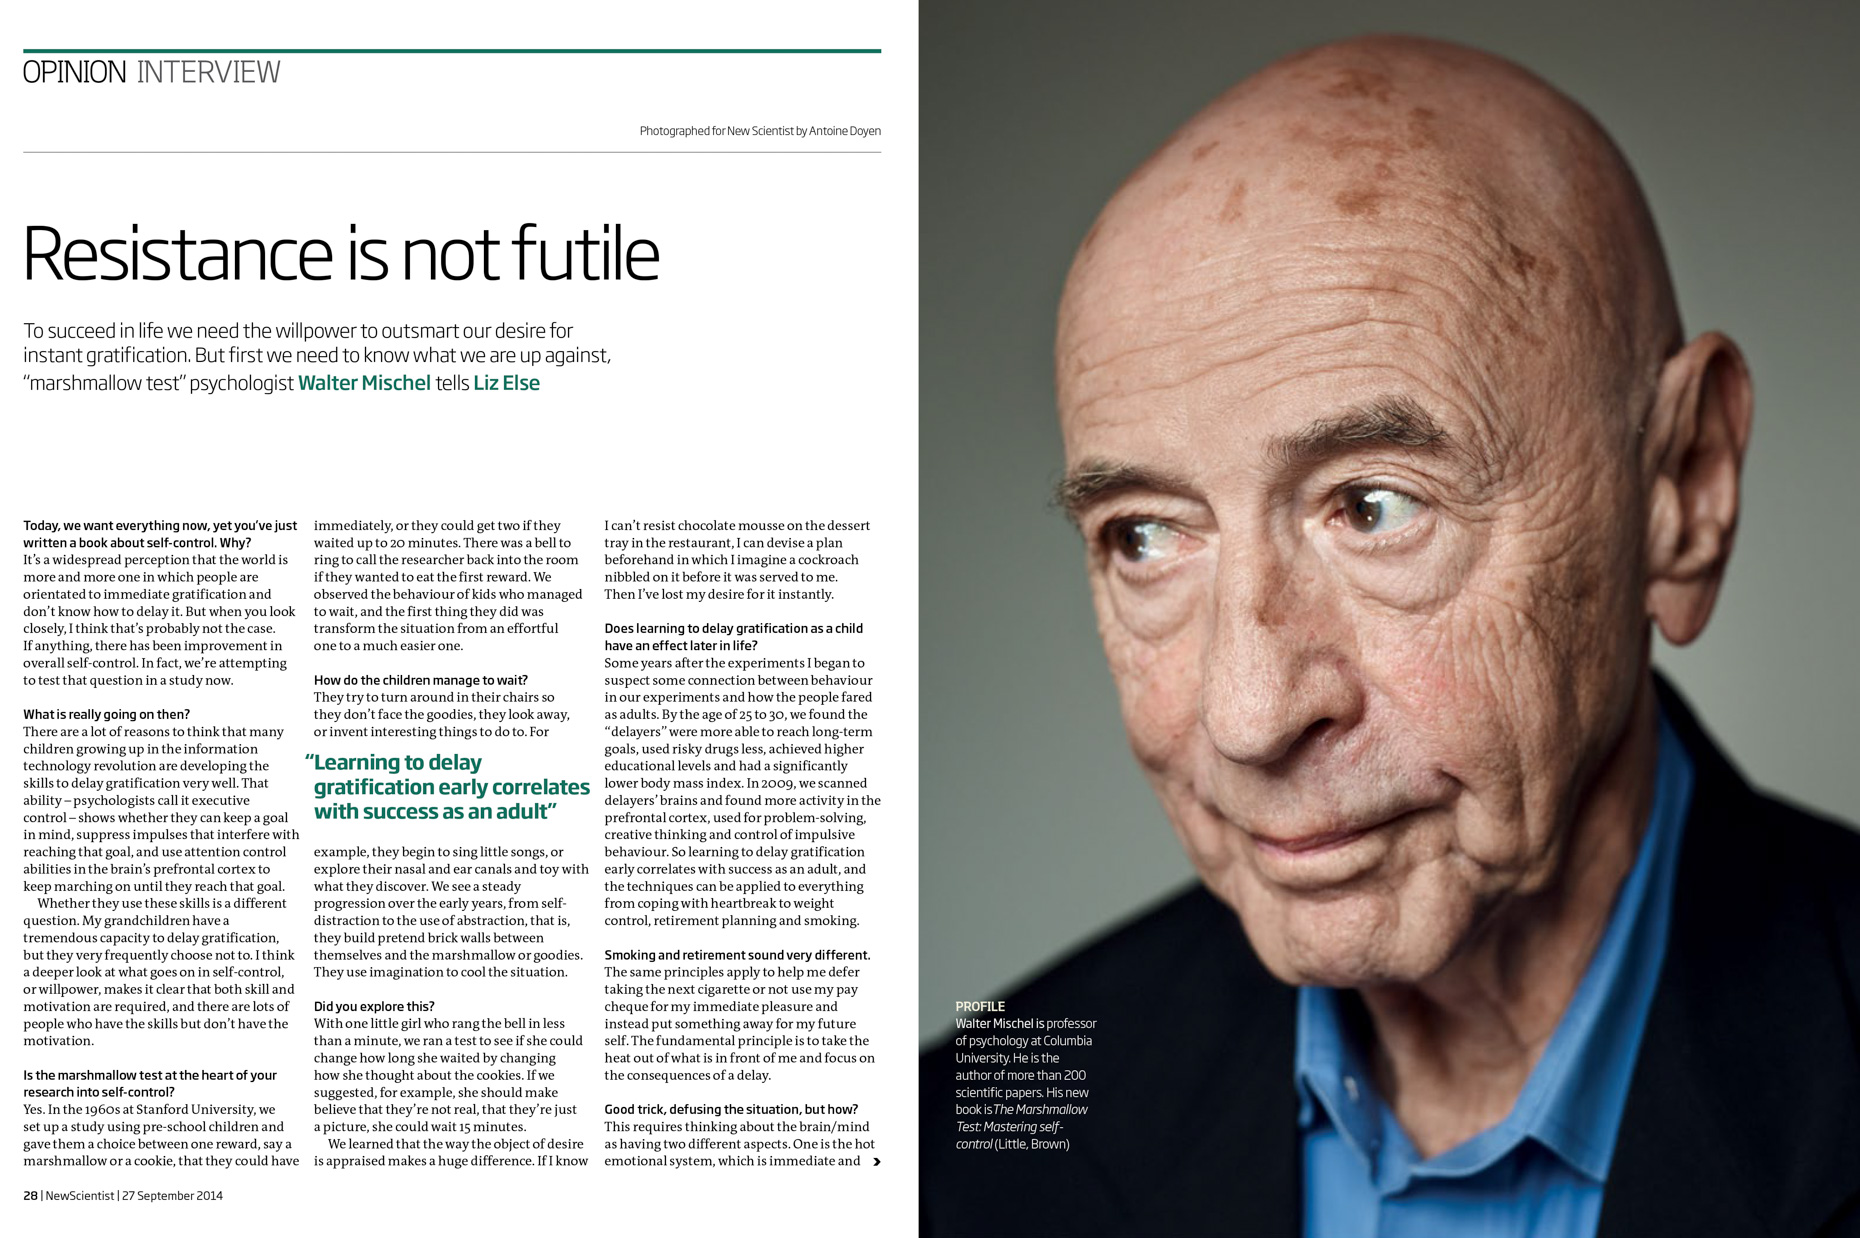 Walter Mischel New Scientist